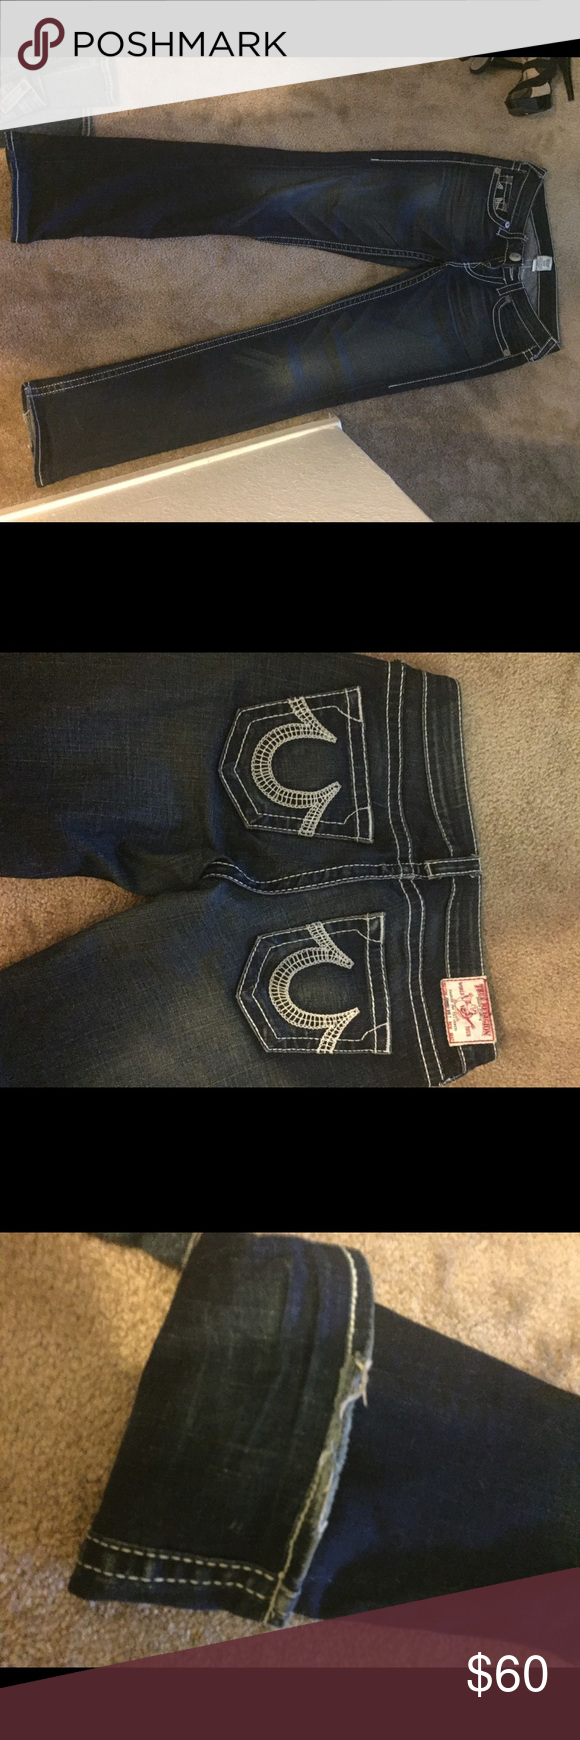 True religion jeans True religion jeans with white stitching. The bottom is a little torn up from dragging but other than that they are in good condition True Religion Jeans Boot Cut